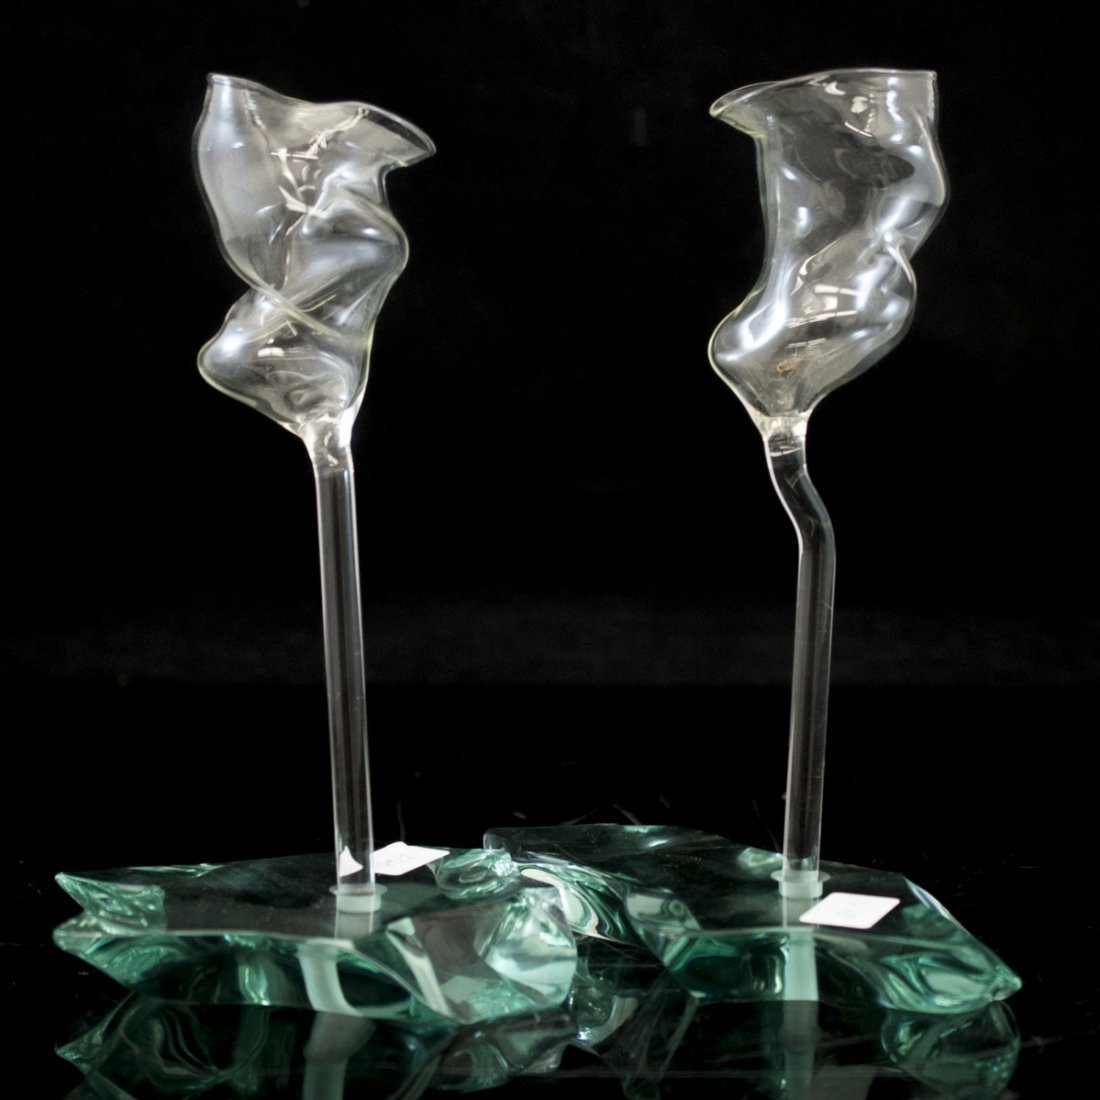 Blown Glass Vases by Danny Lane (British 1955-)